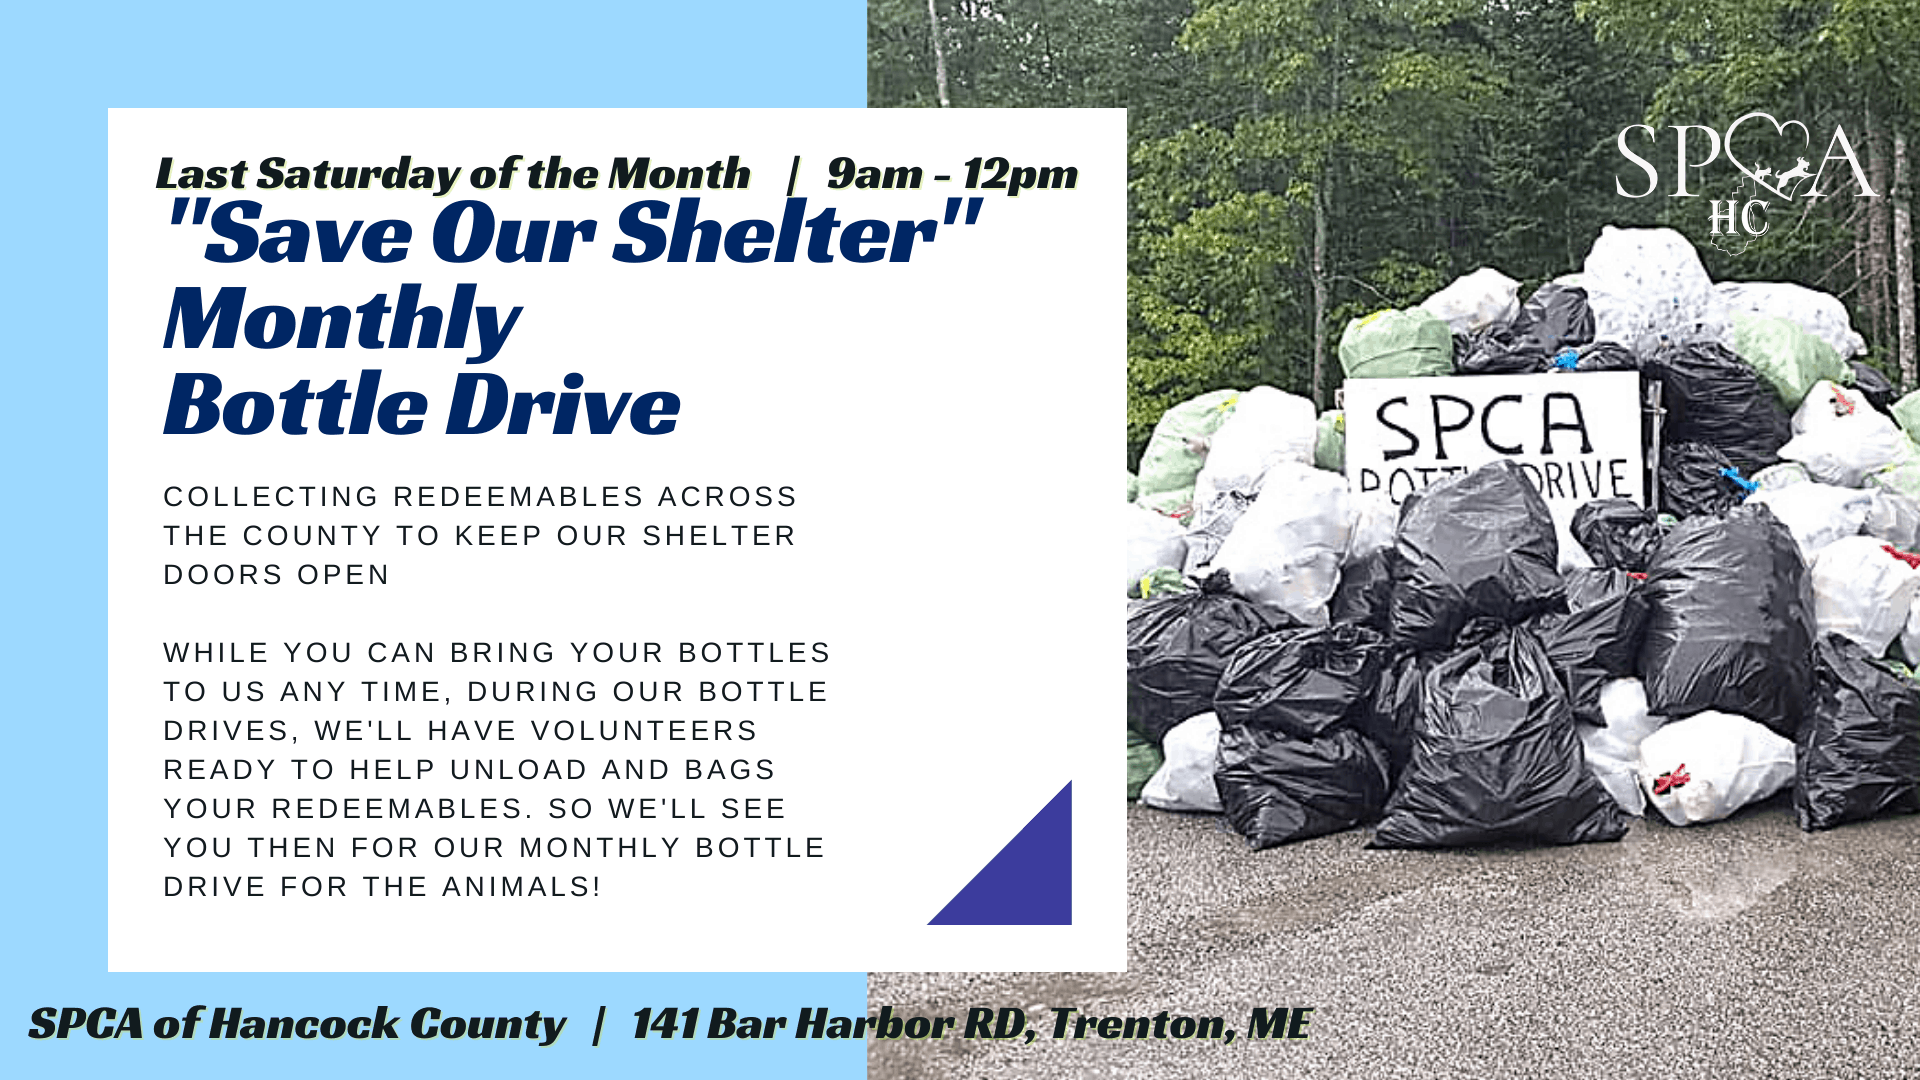 Save Our Shelter Monthly Bottle Drive